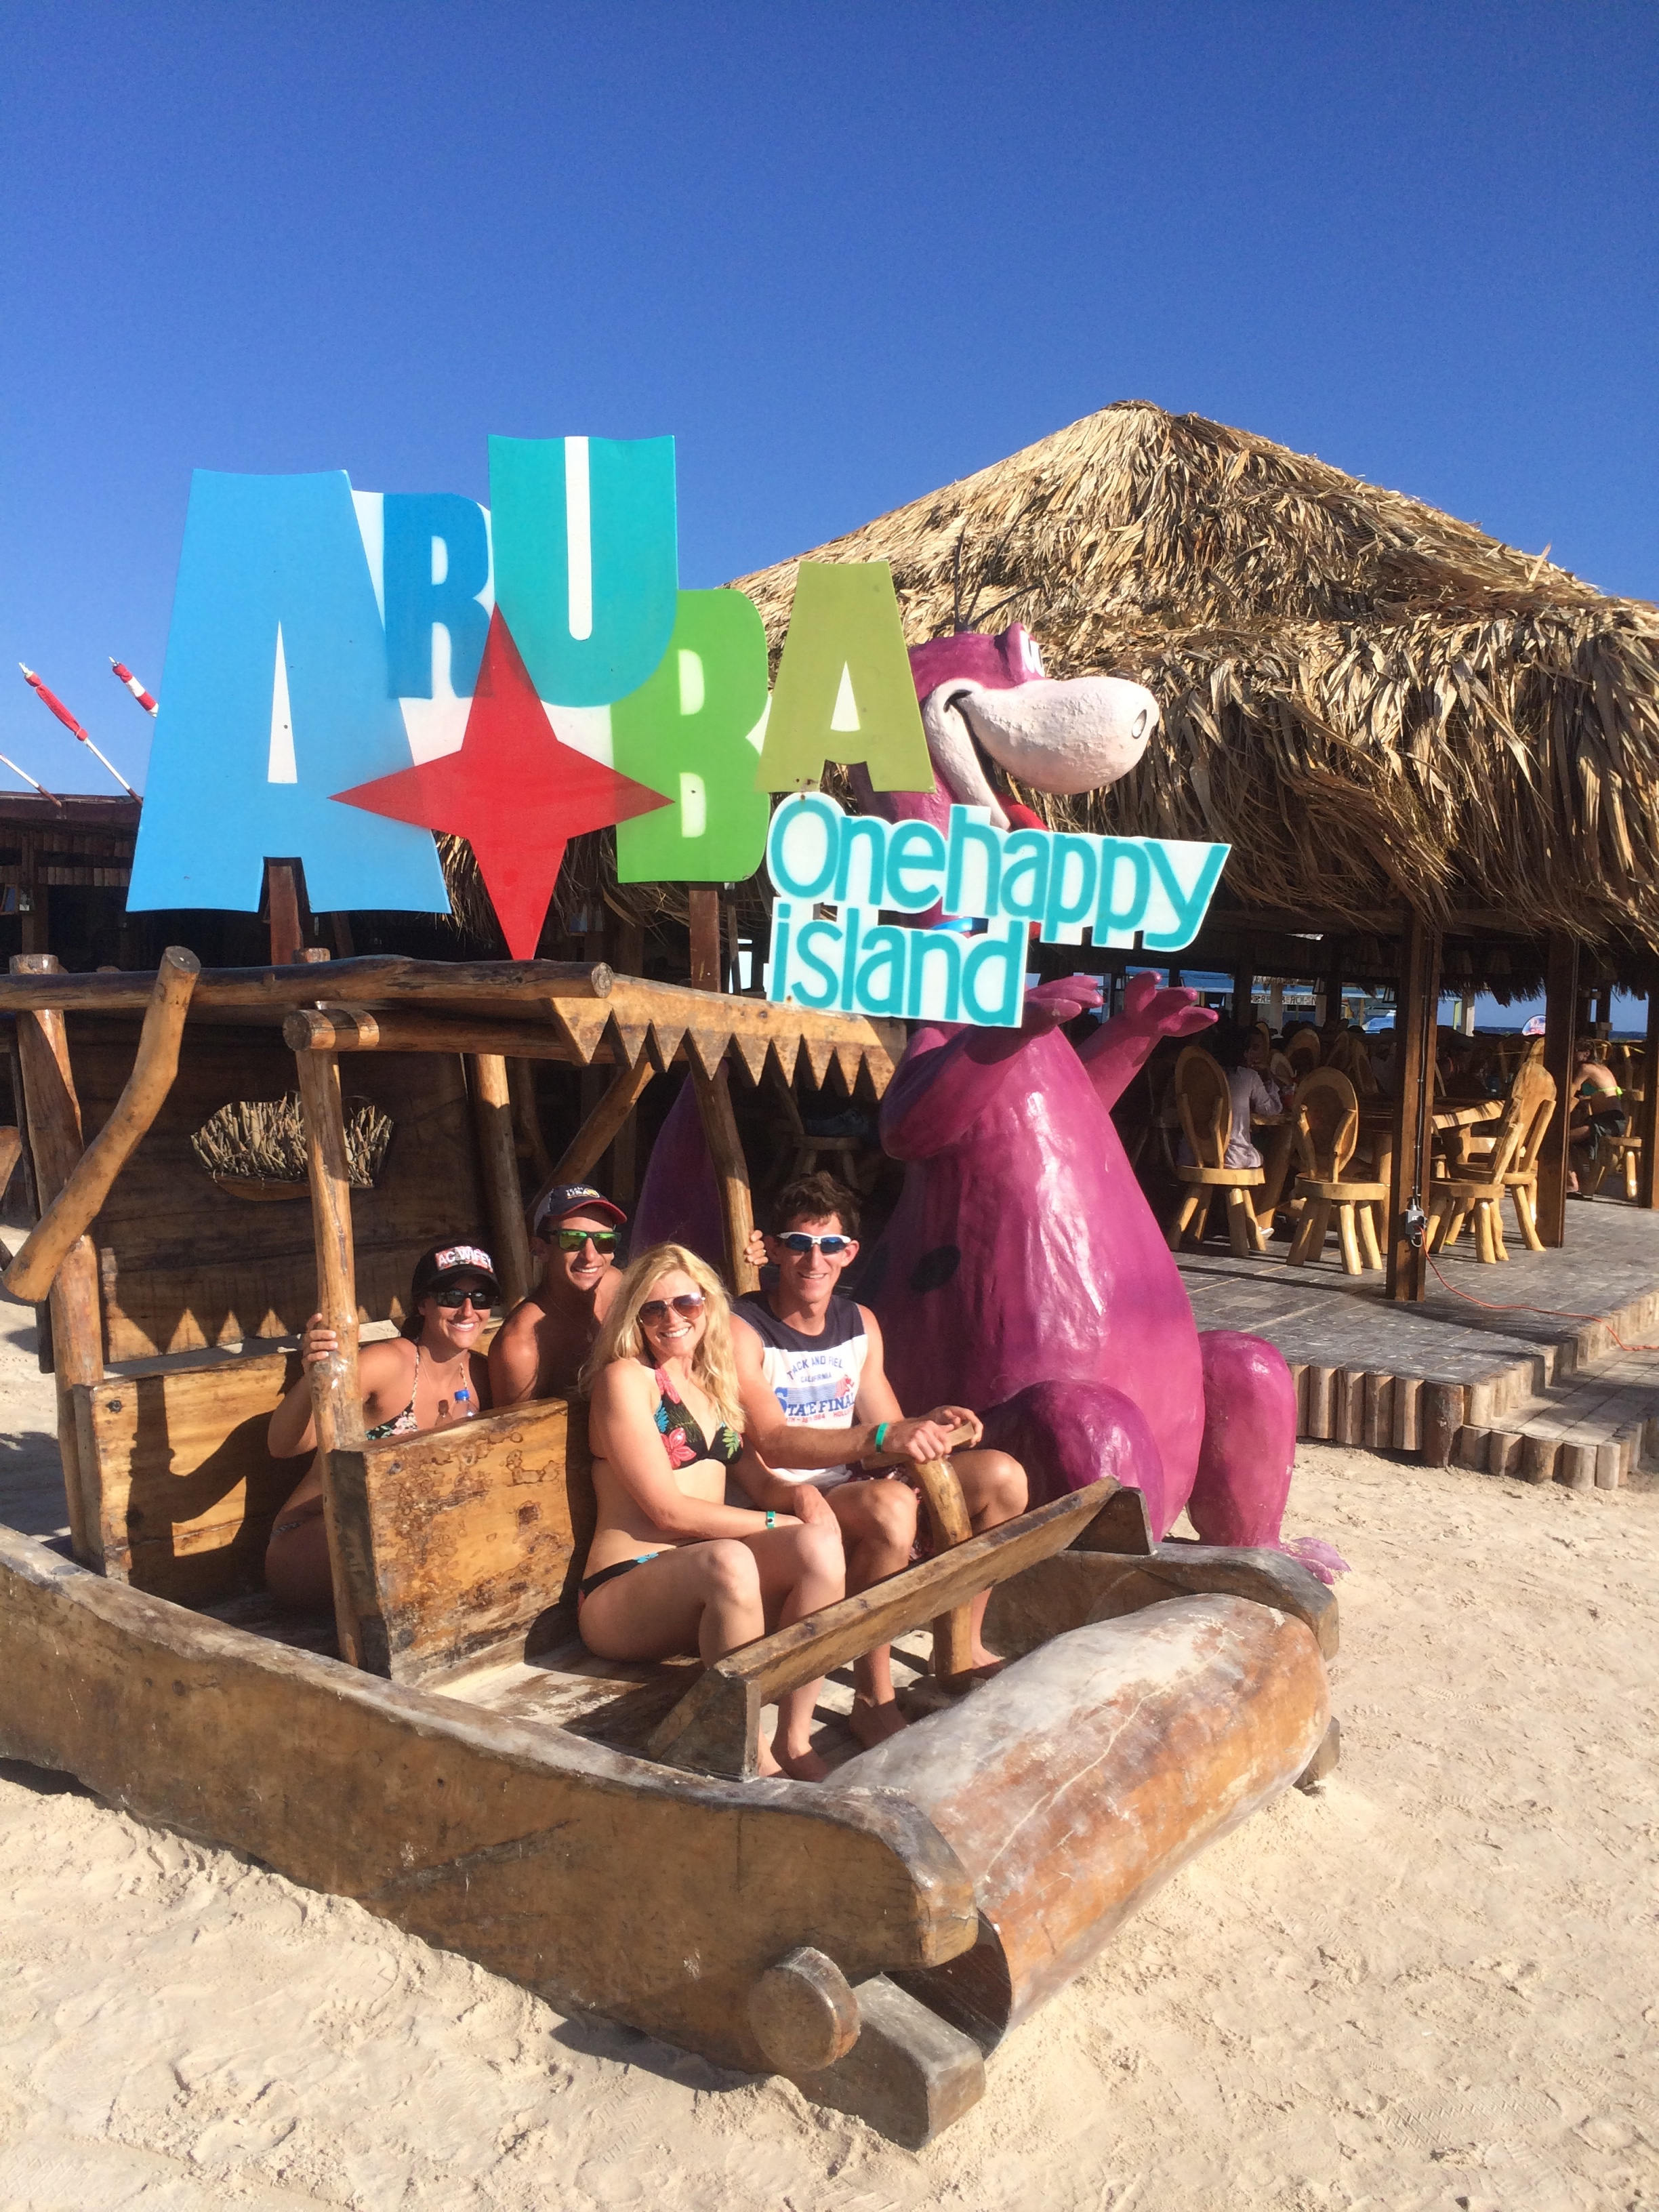 Colin & Amanda Riley as well as Brittney & I at Baby Beach in Aruba on our honeymoon hanging out like Flintstones!